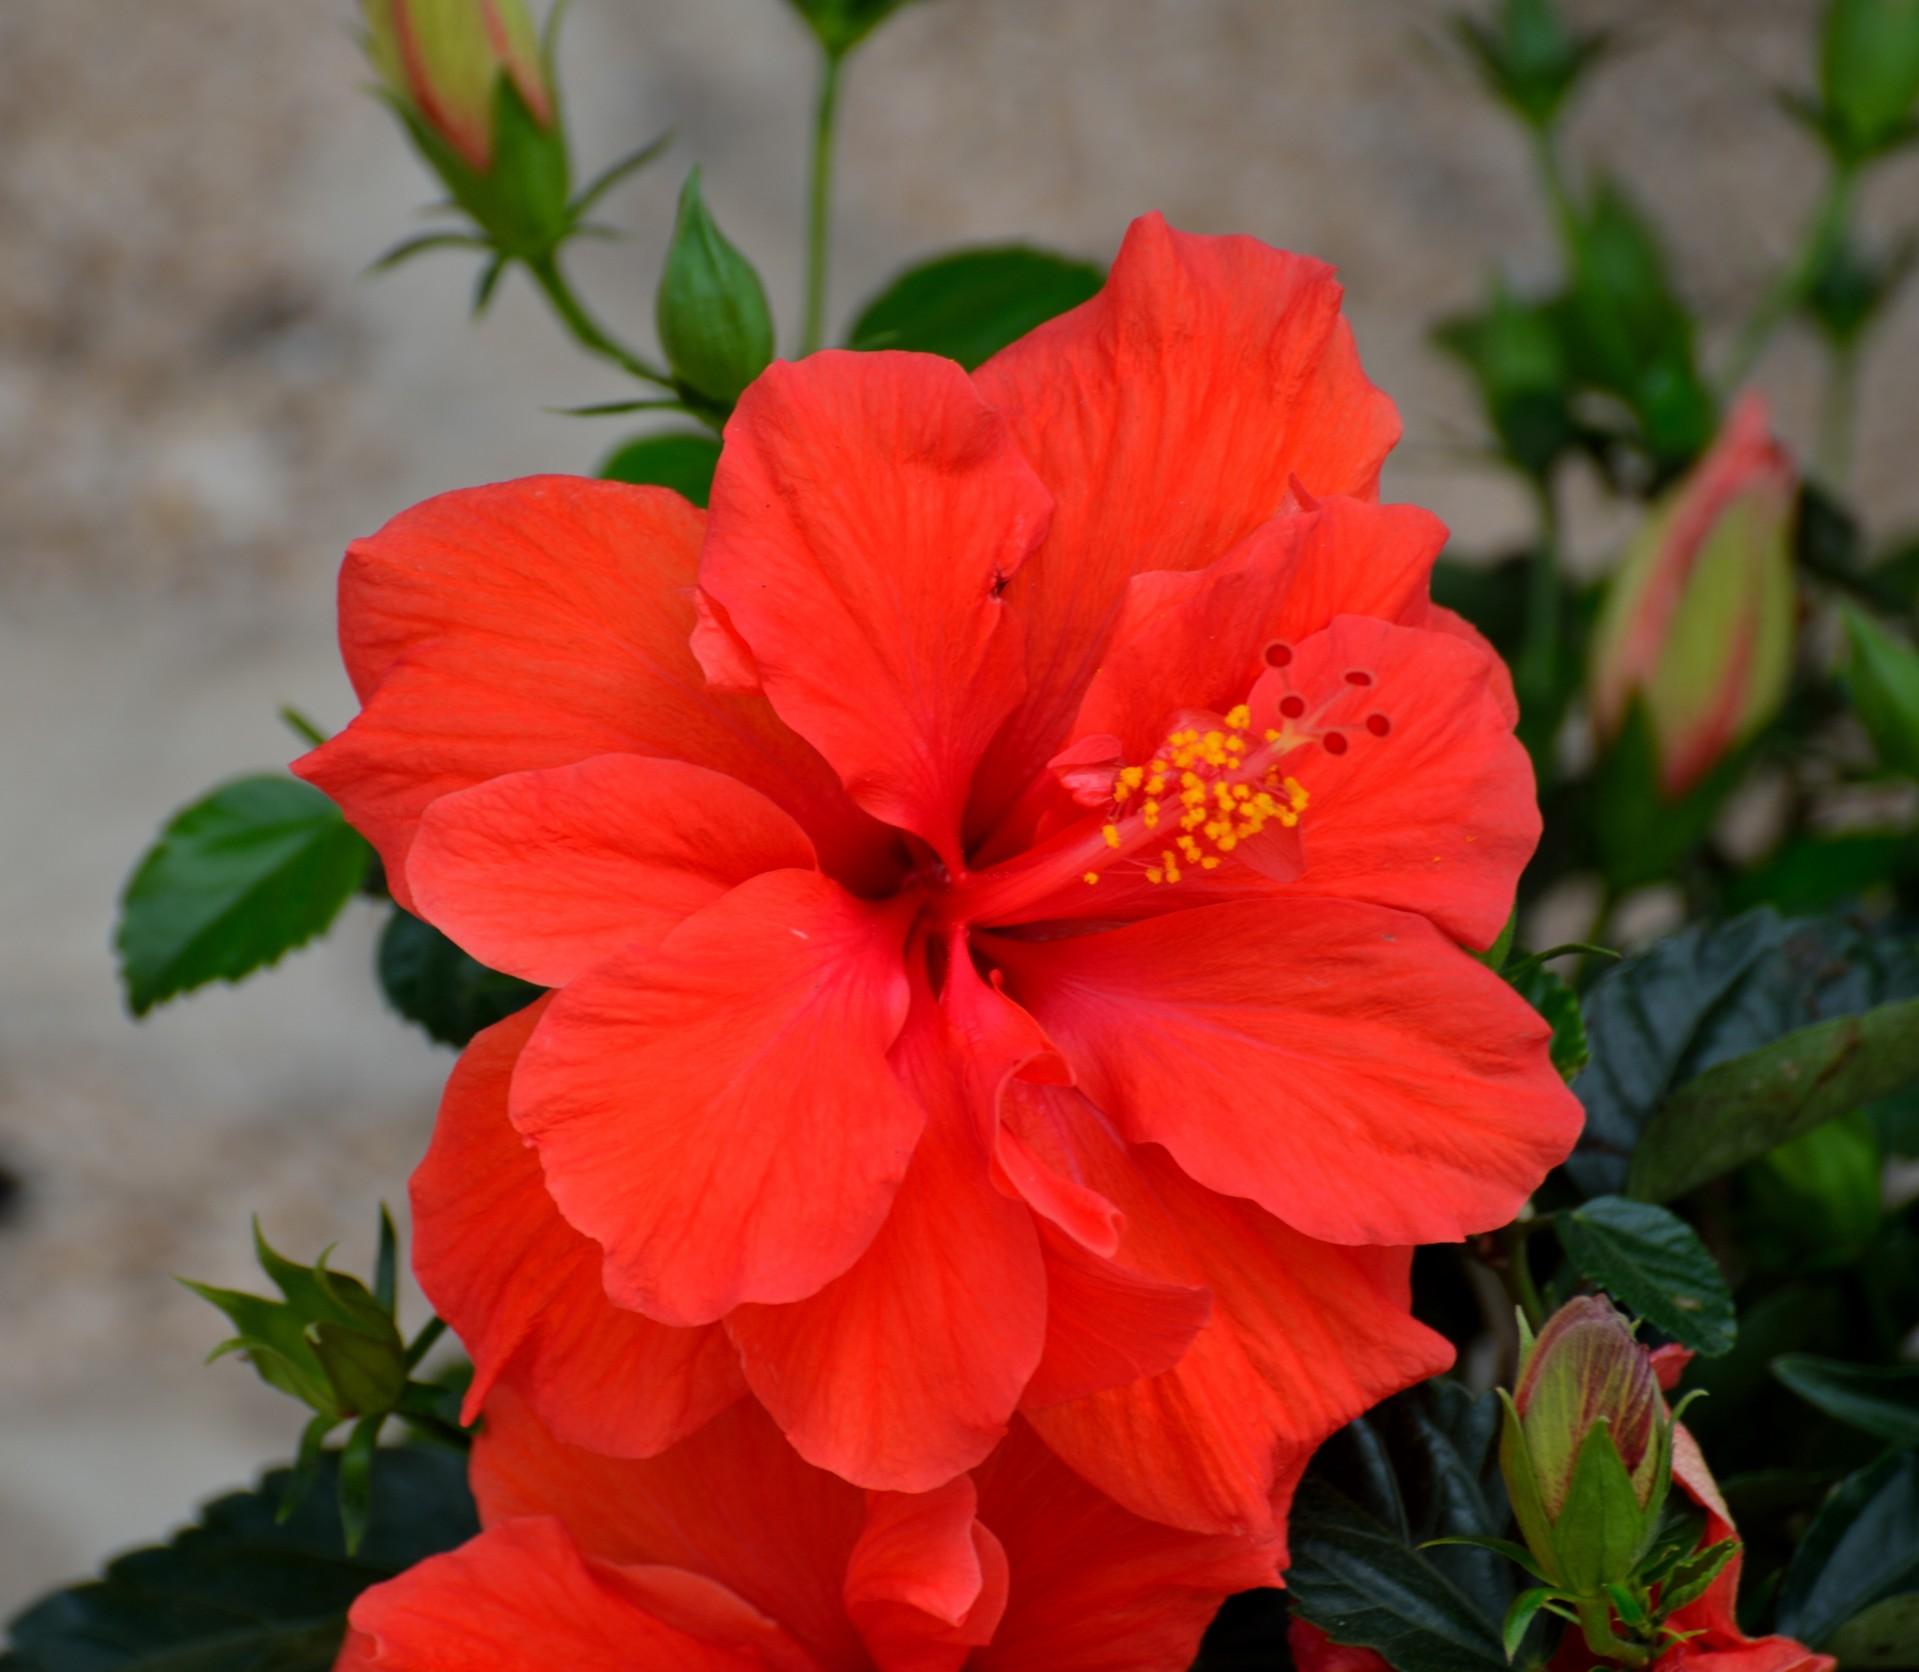 Shutterstock Hd Wallpapers Vibrant Red Hibiscus Flower Free Stock Photo Public